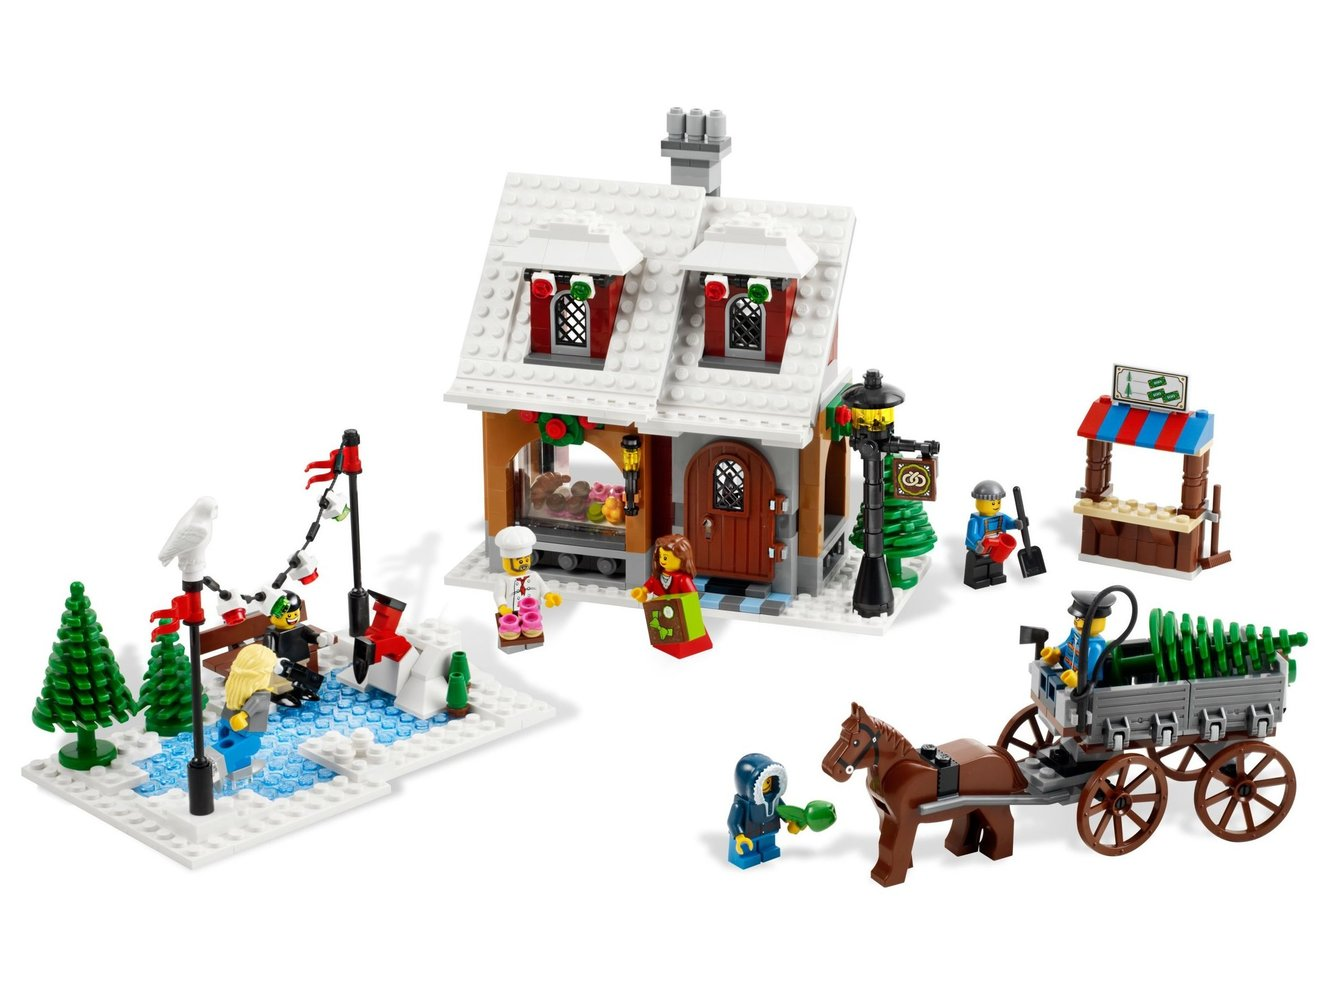 Winter Village Bakery